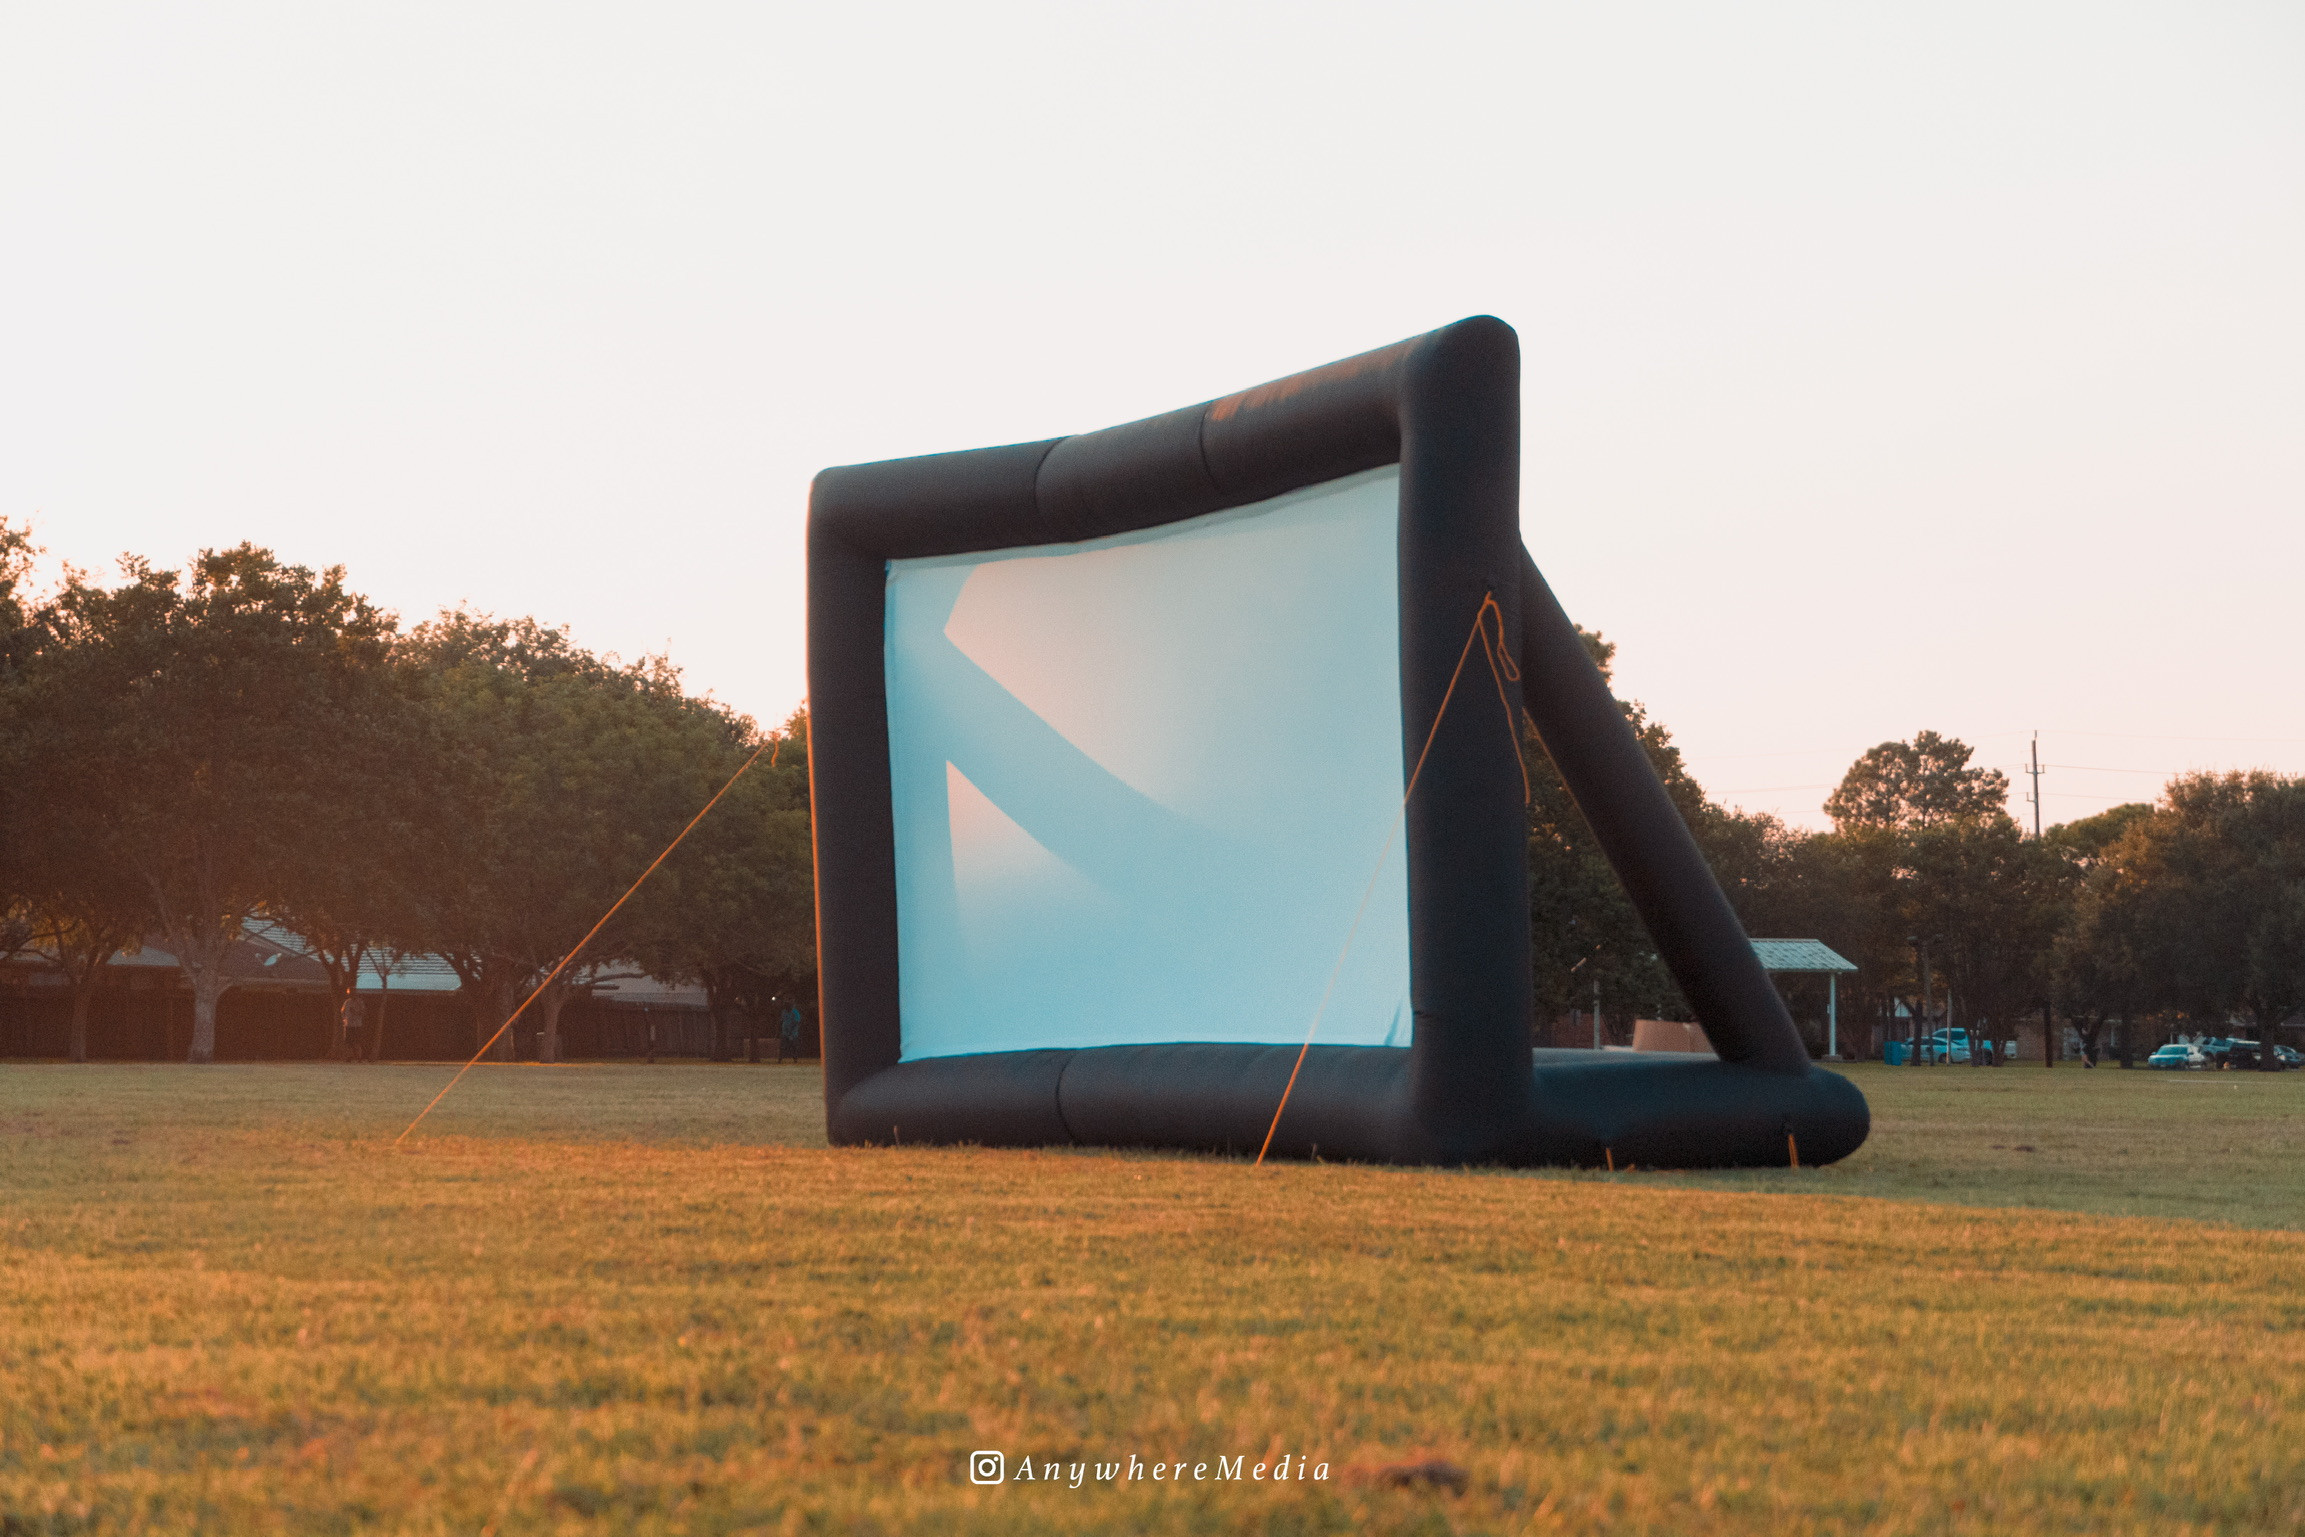 14-Foot Screen Delivery & Set Up